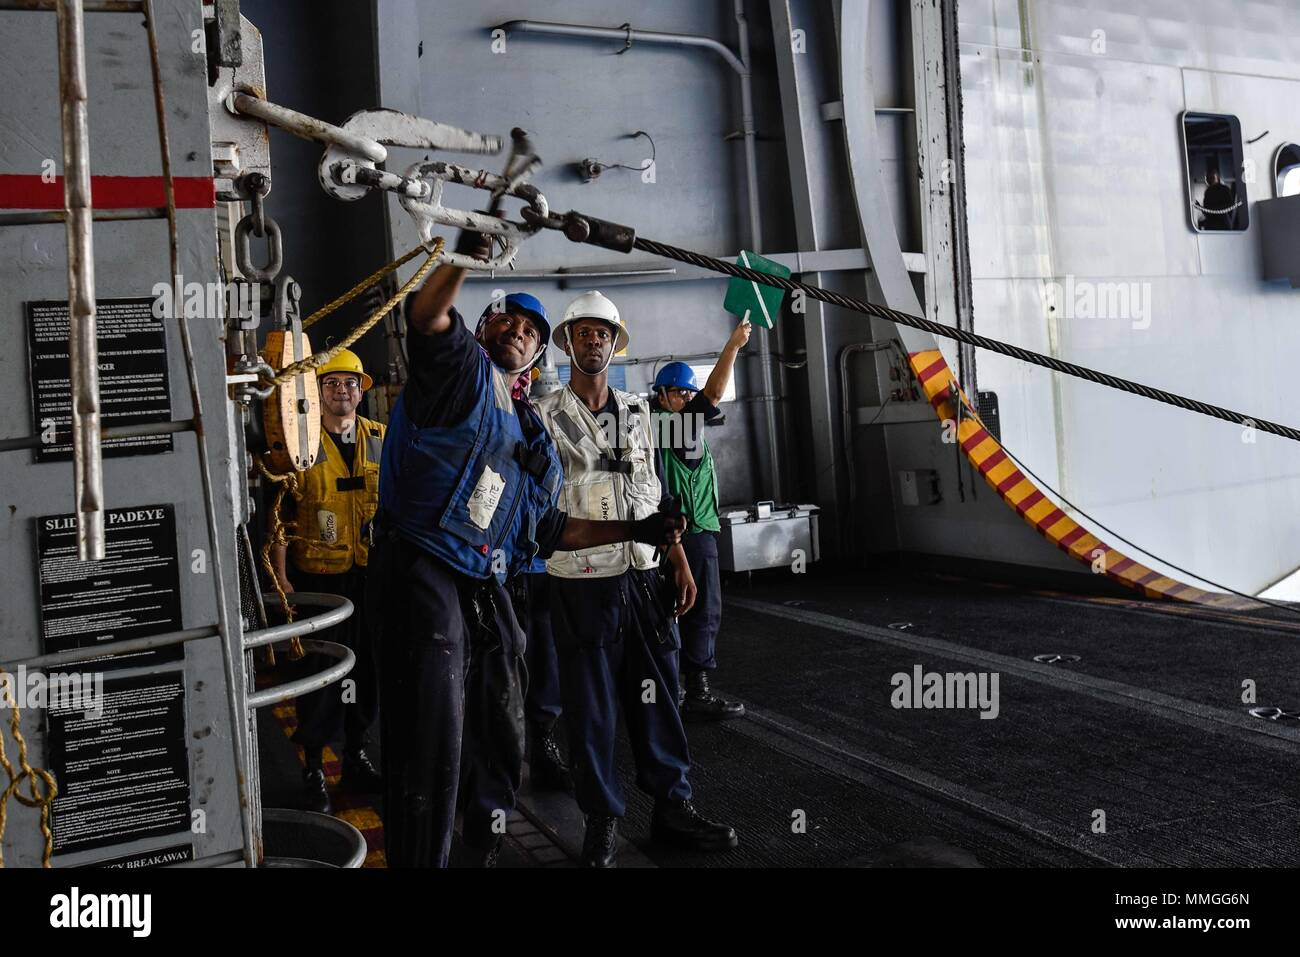 Usns Peco Stock Photos & Usns Peco Stock Images - Alamy